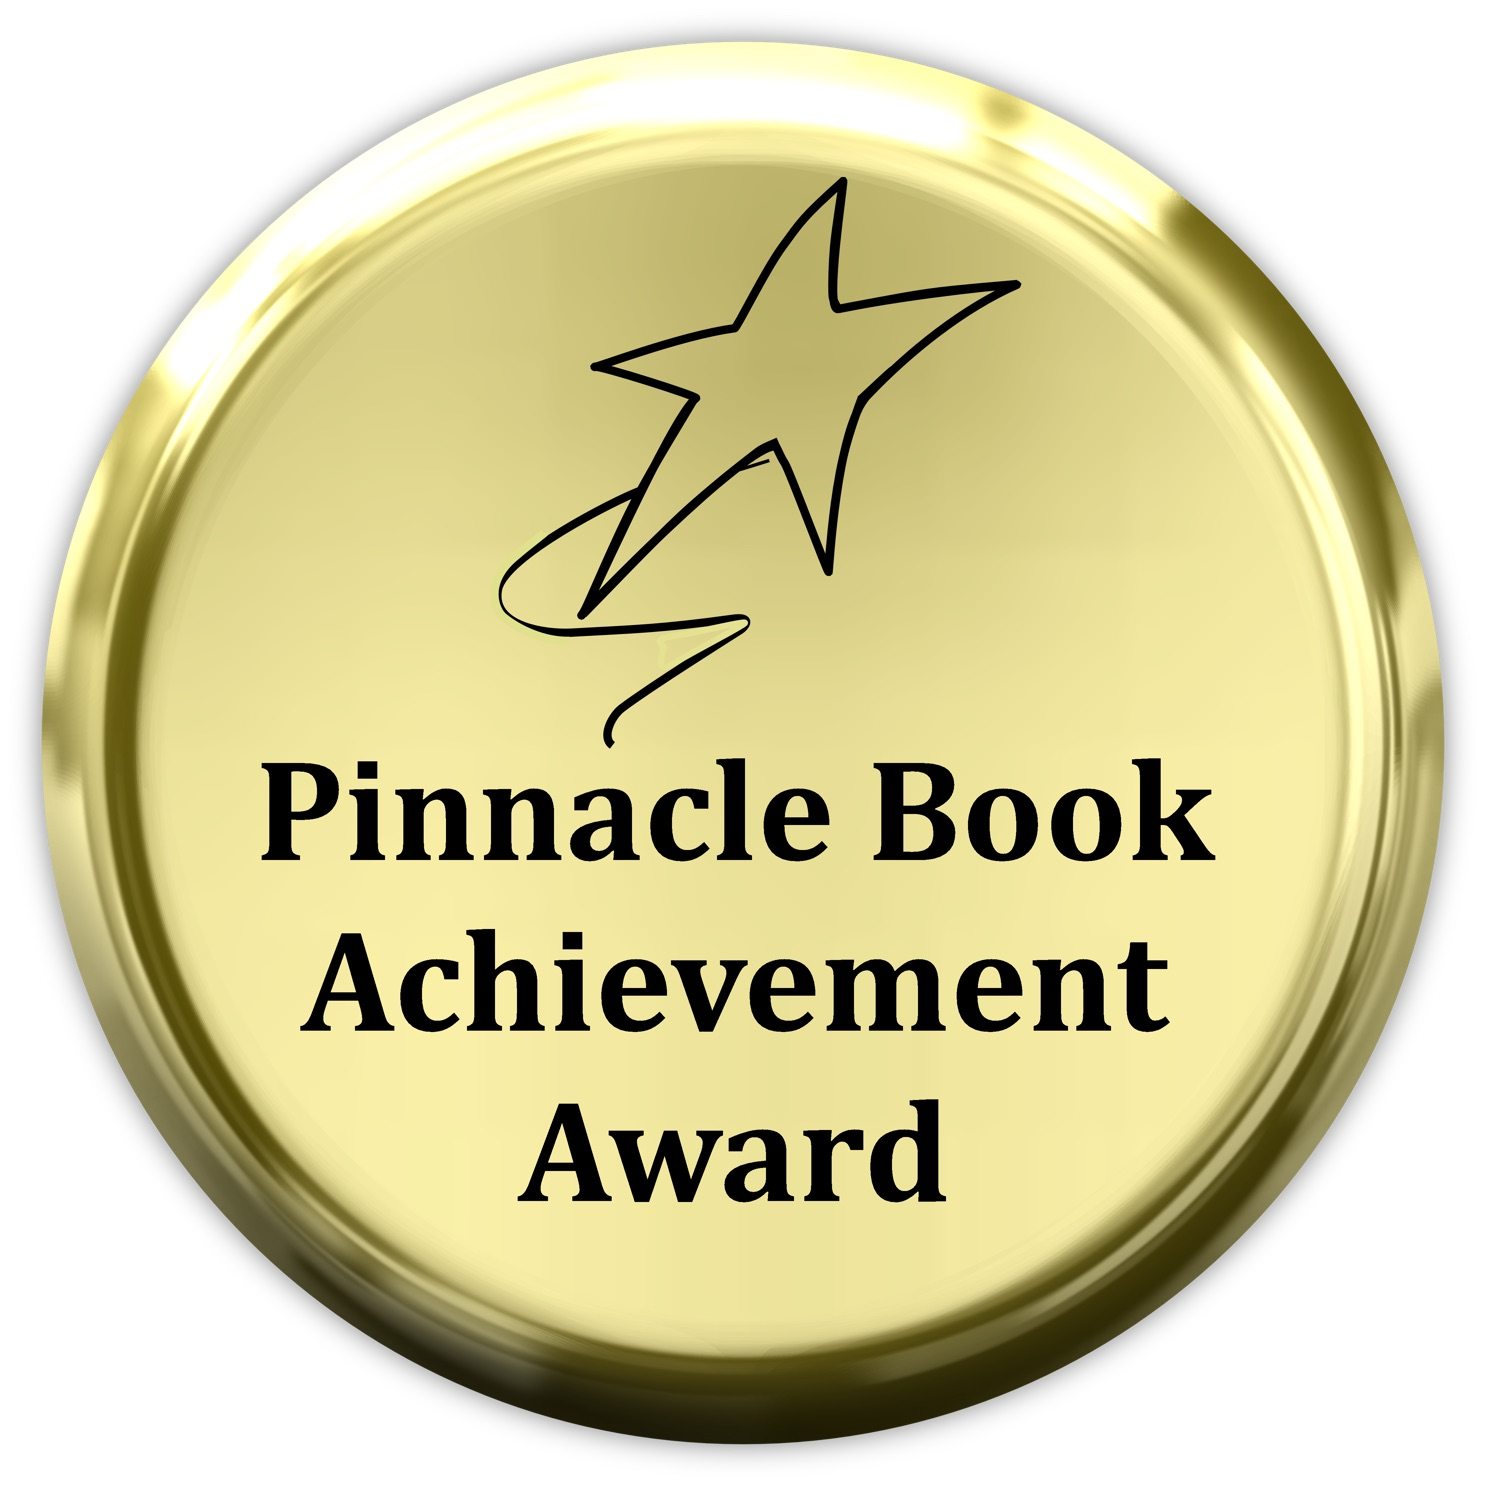 ABBY & HOLLY BOOK 6: FAULTY TIMELINE - won a Pinnacle Book Achievement Award